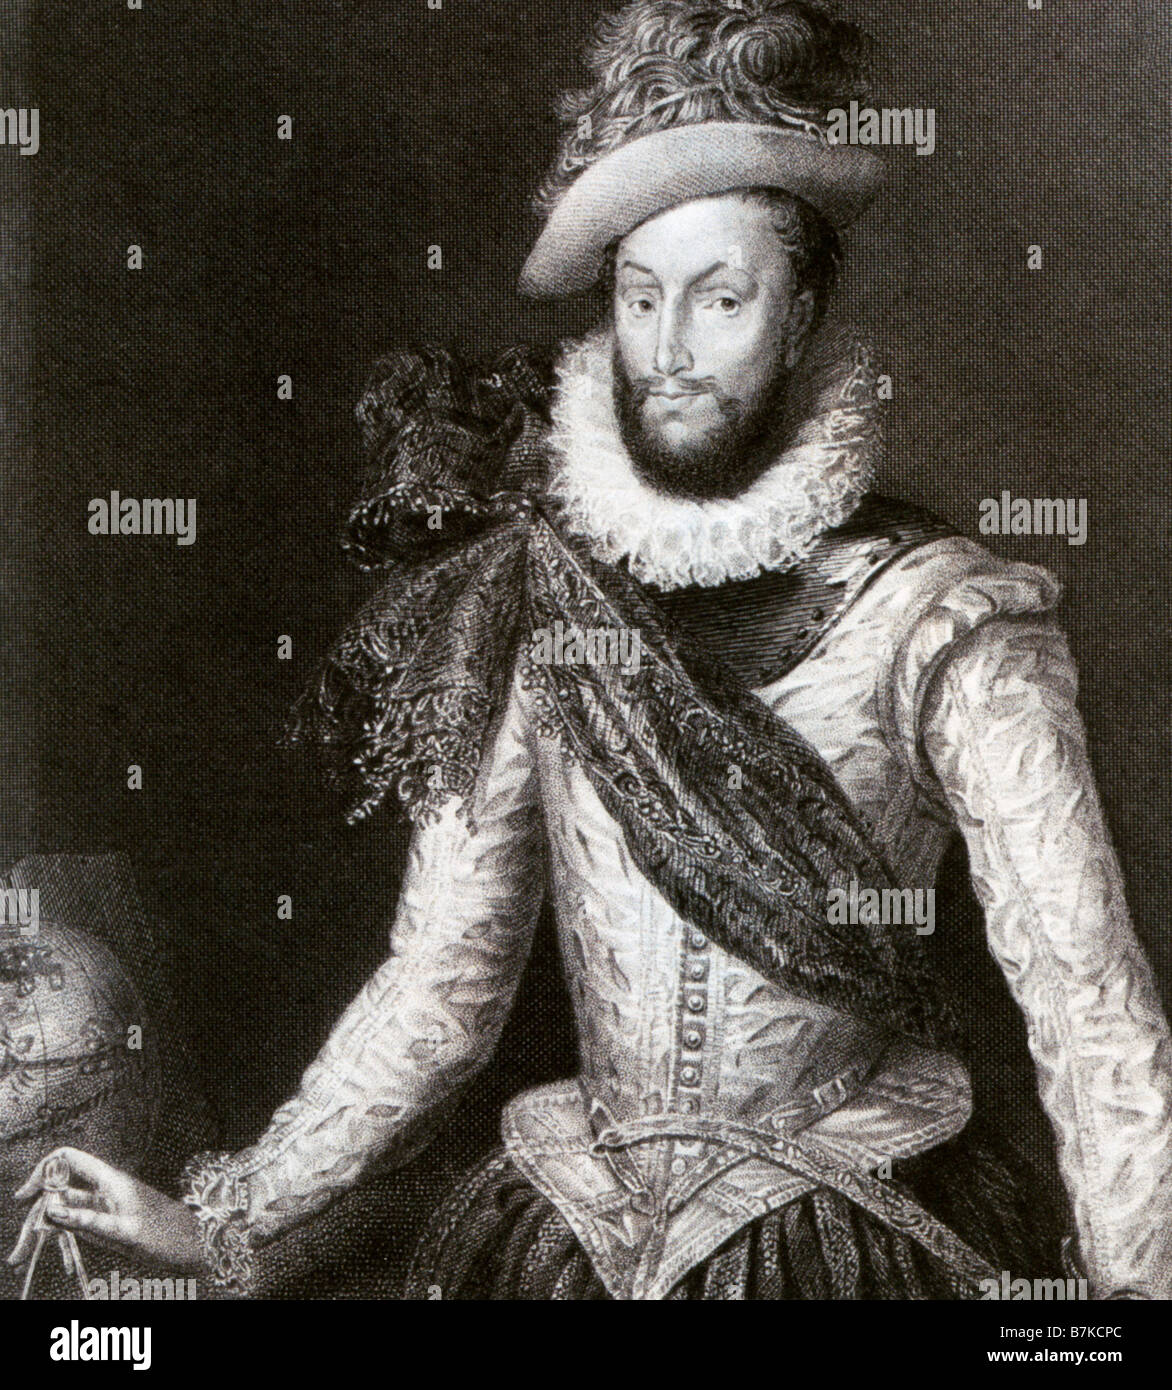 SIR WALTER RALEIGH  English courtier, navigator and poet 1552-1618 - Stock Image